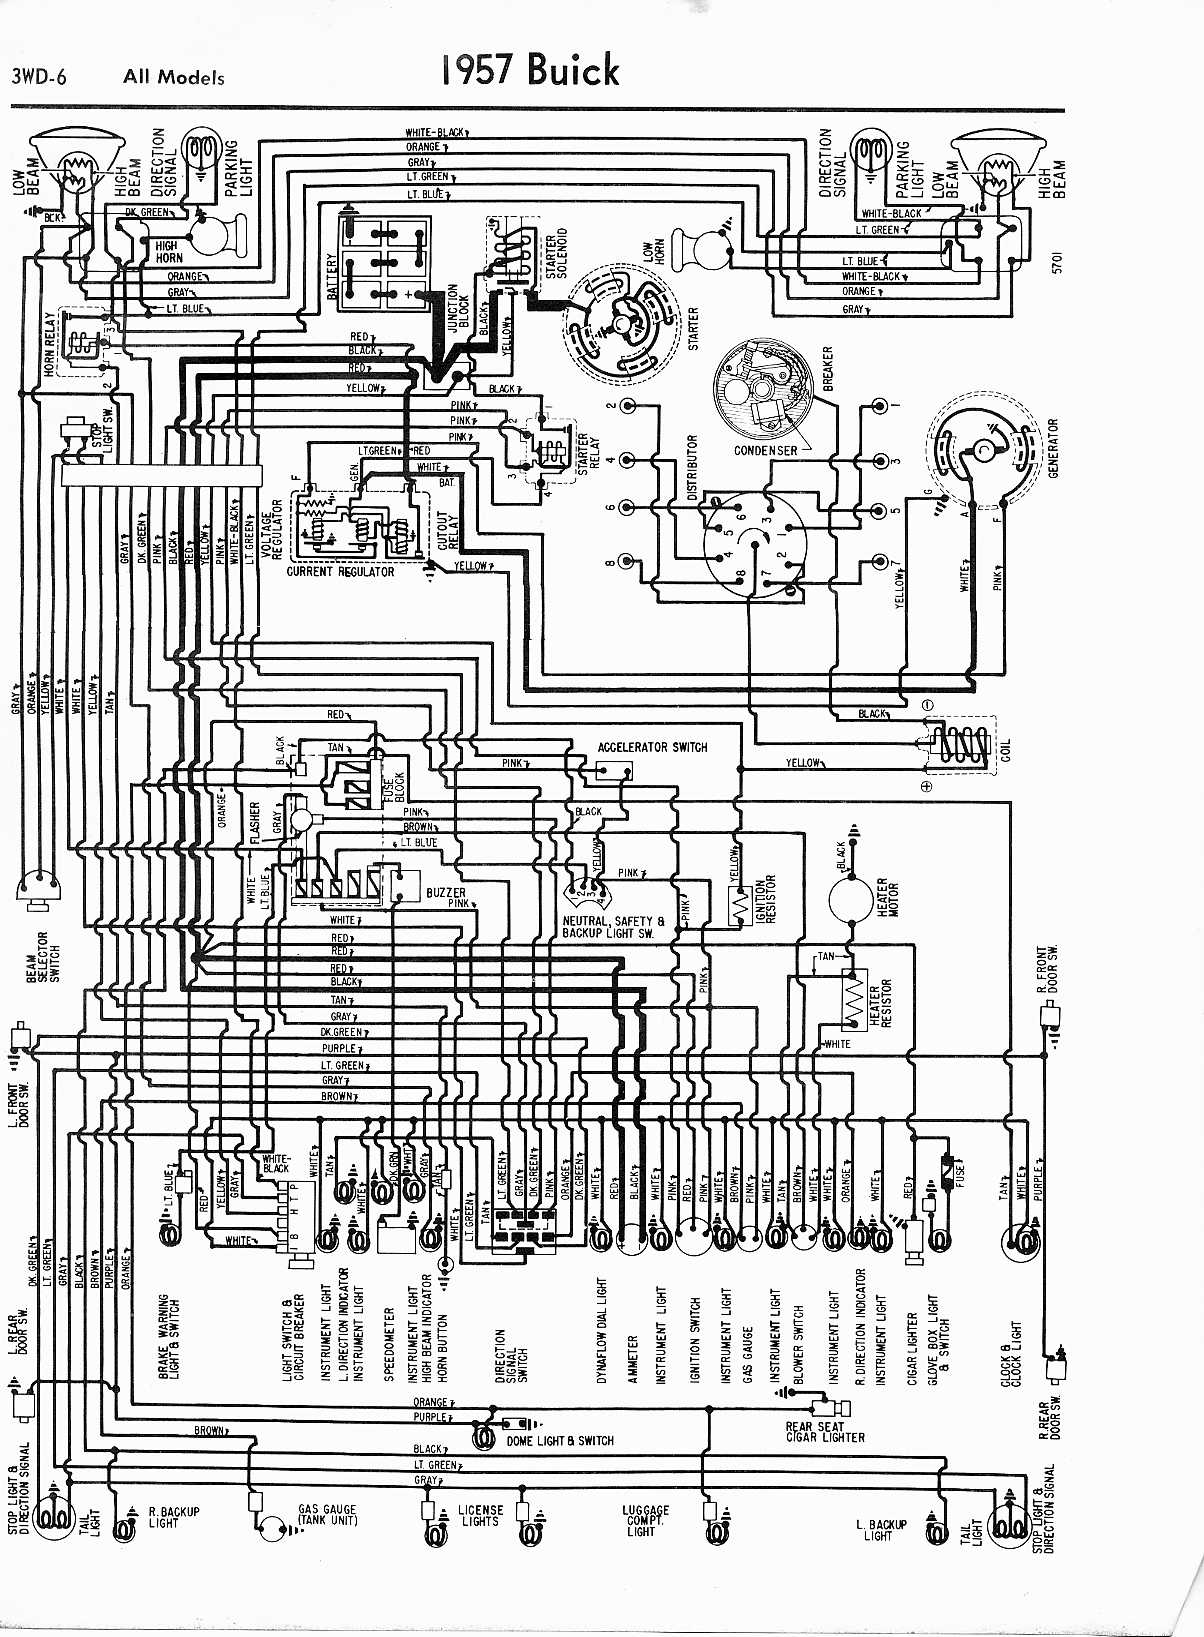 Pontiac 400 Wiring Harness Diagram Complete Diagrams 1979 Firebird For Enthusiast U2022 Rh Rasalibre Co 2008 G6 73